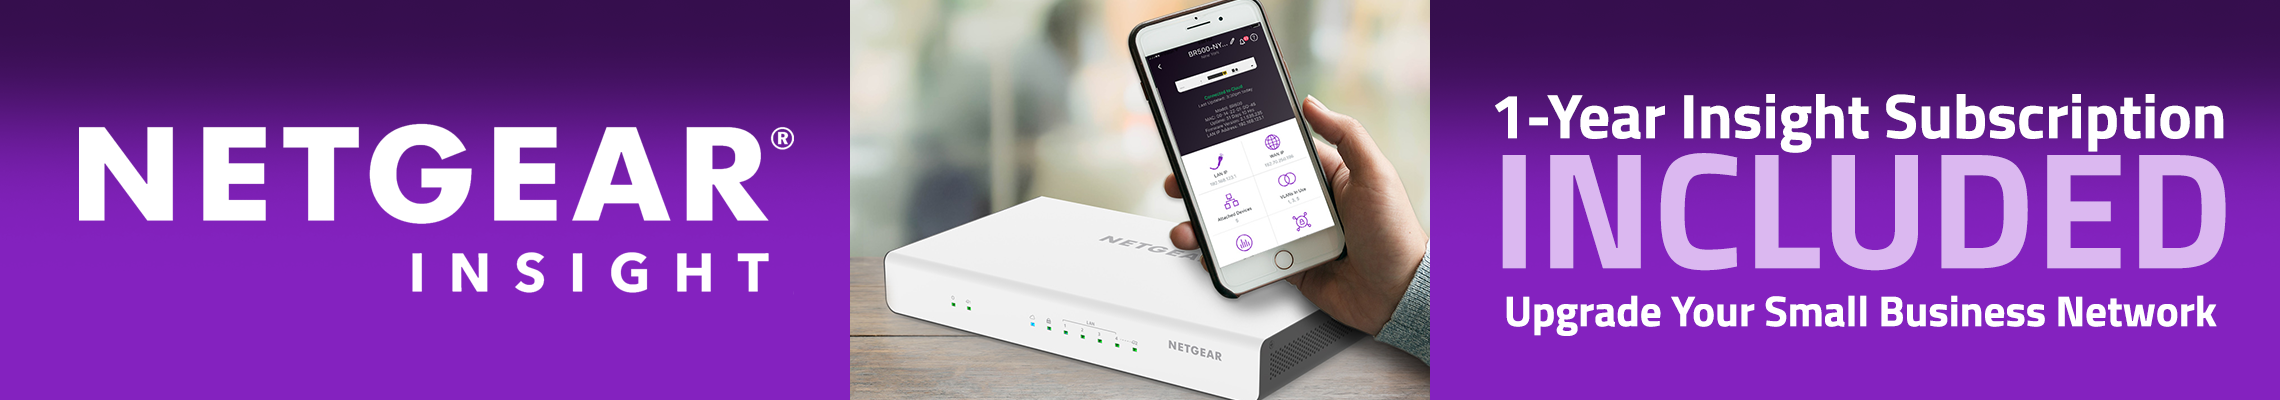 NETGEAR One-Year Insight Subscription Included